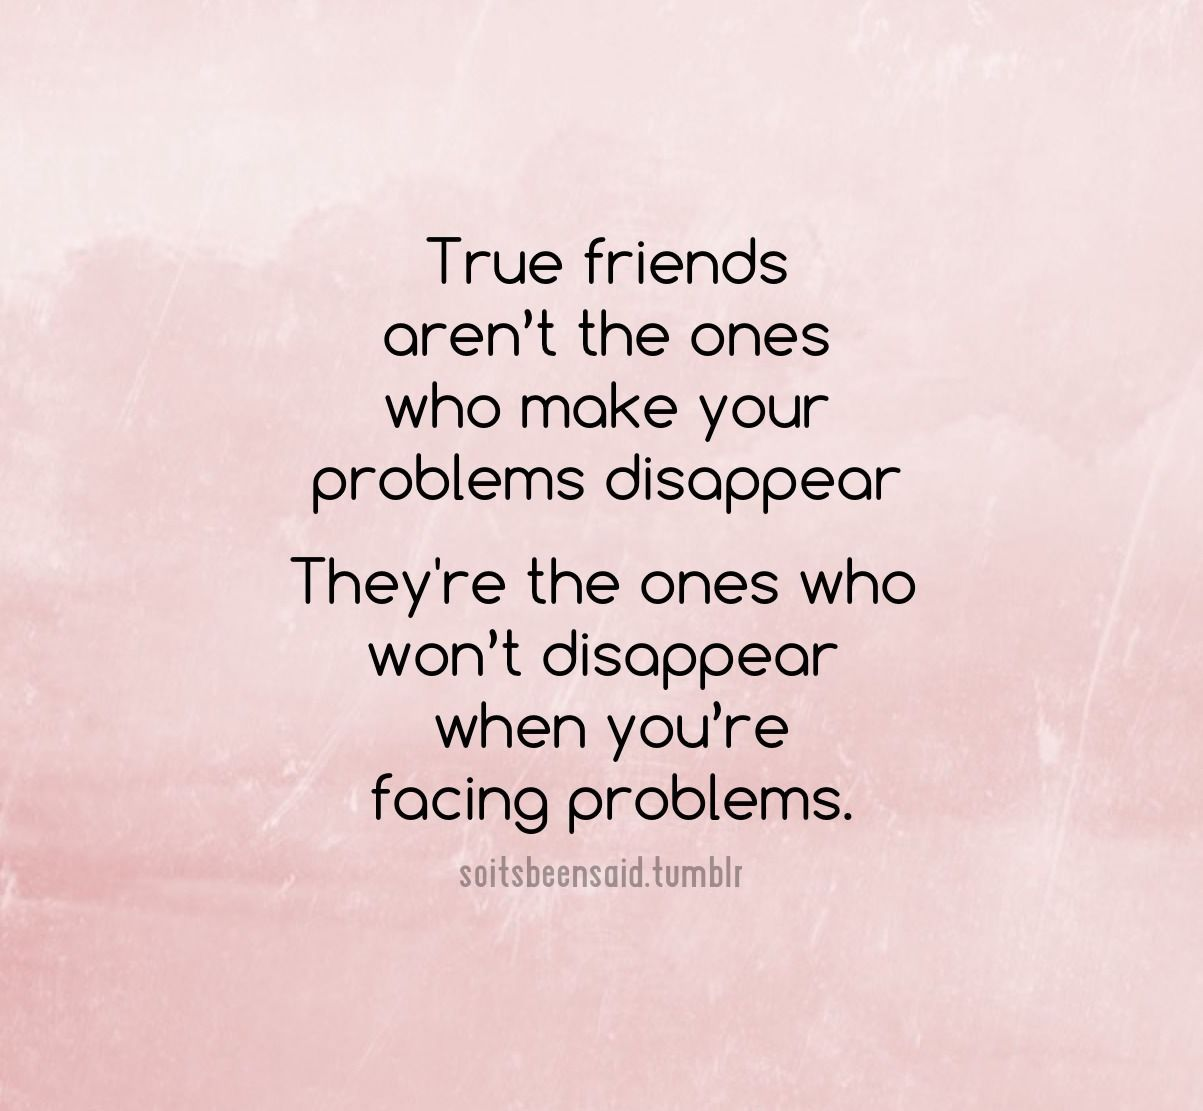 Quotes About Cousin Friendship True Friends Are The Ones Who Won't Disappear When You Are Facing